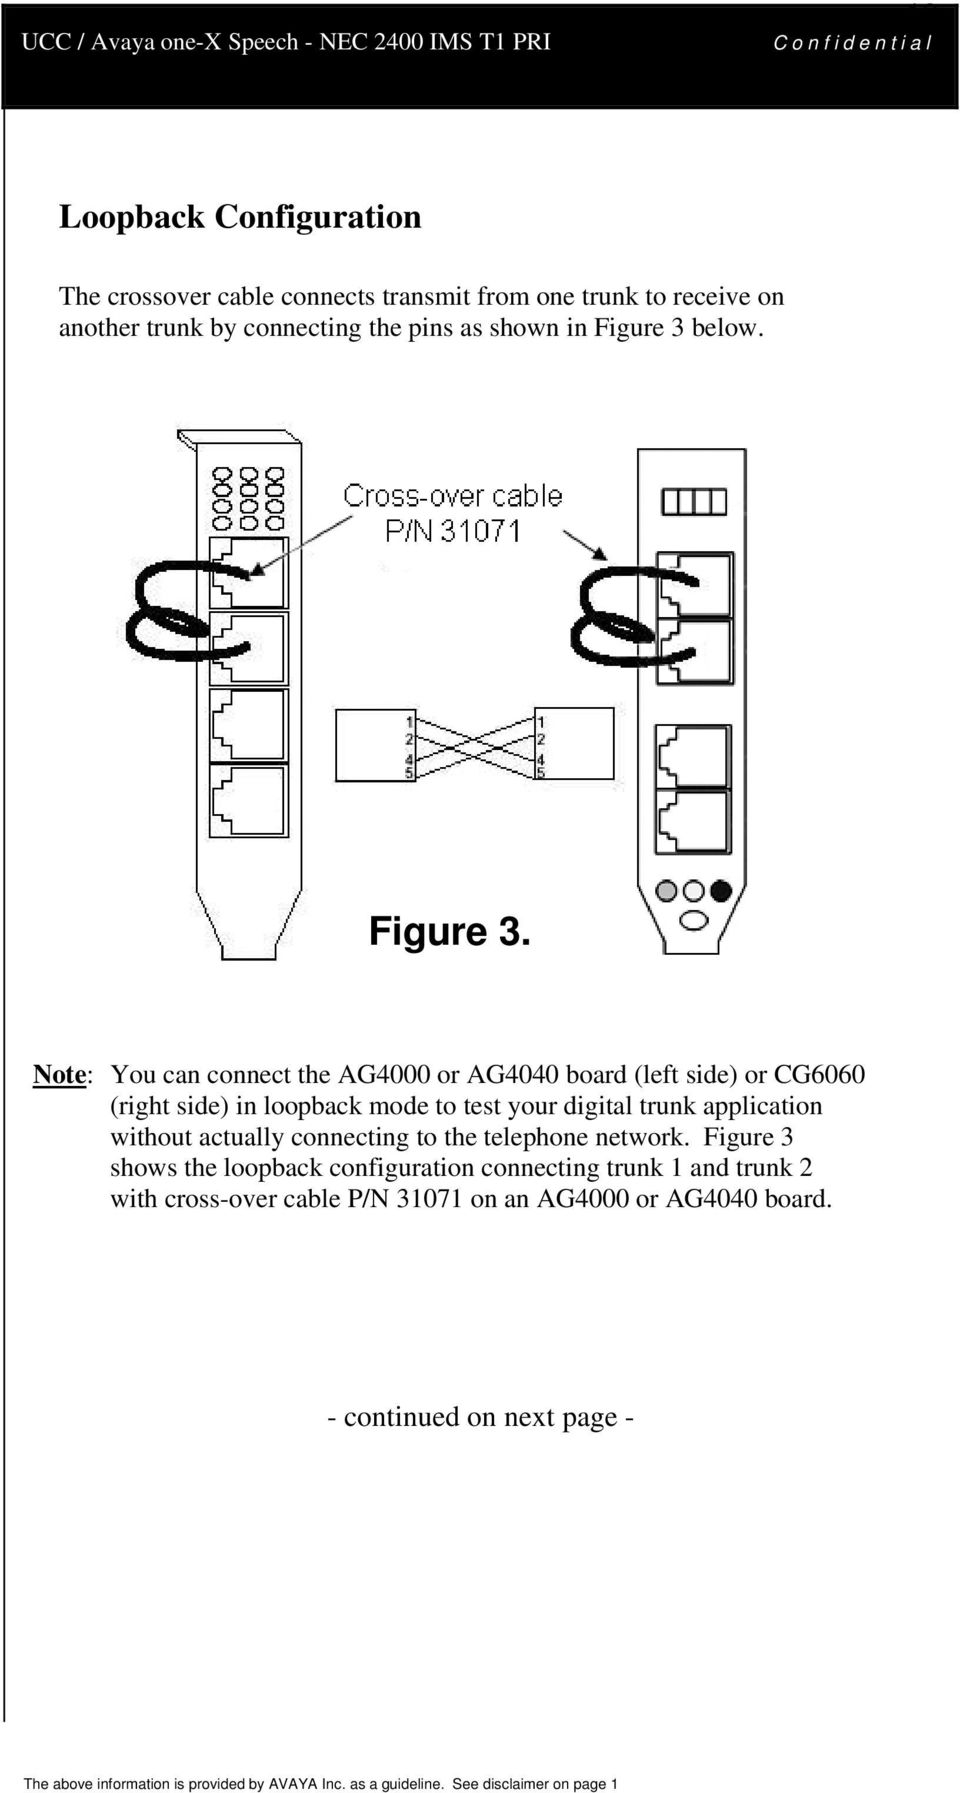 Nec 2400 Ims T1 Pri Pdf The Above Diagram Shows An Ethernet Crossover Cable Pin Out For Figure 3